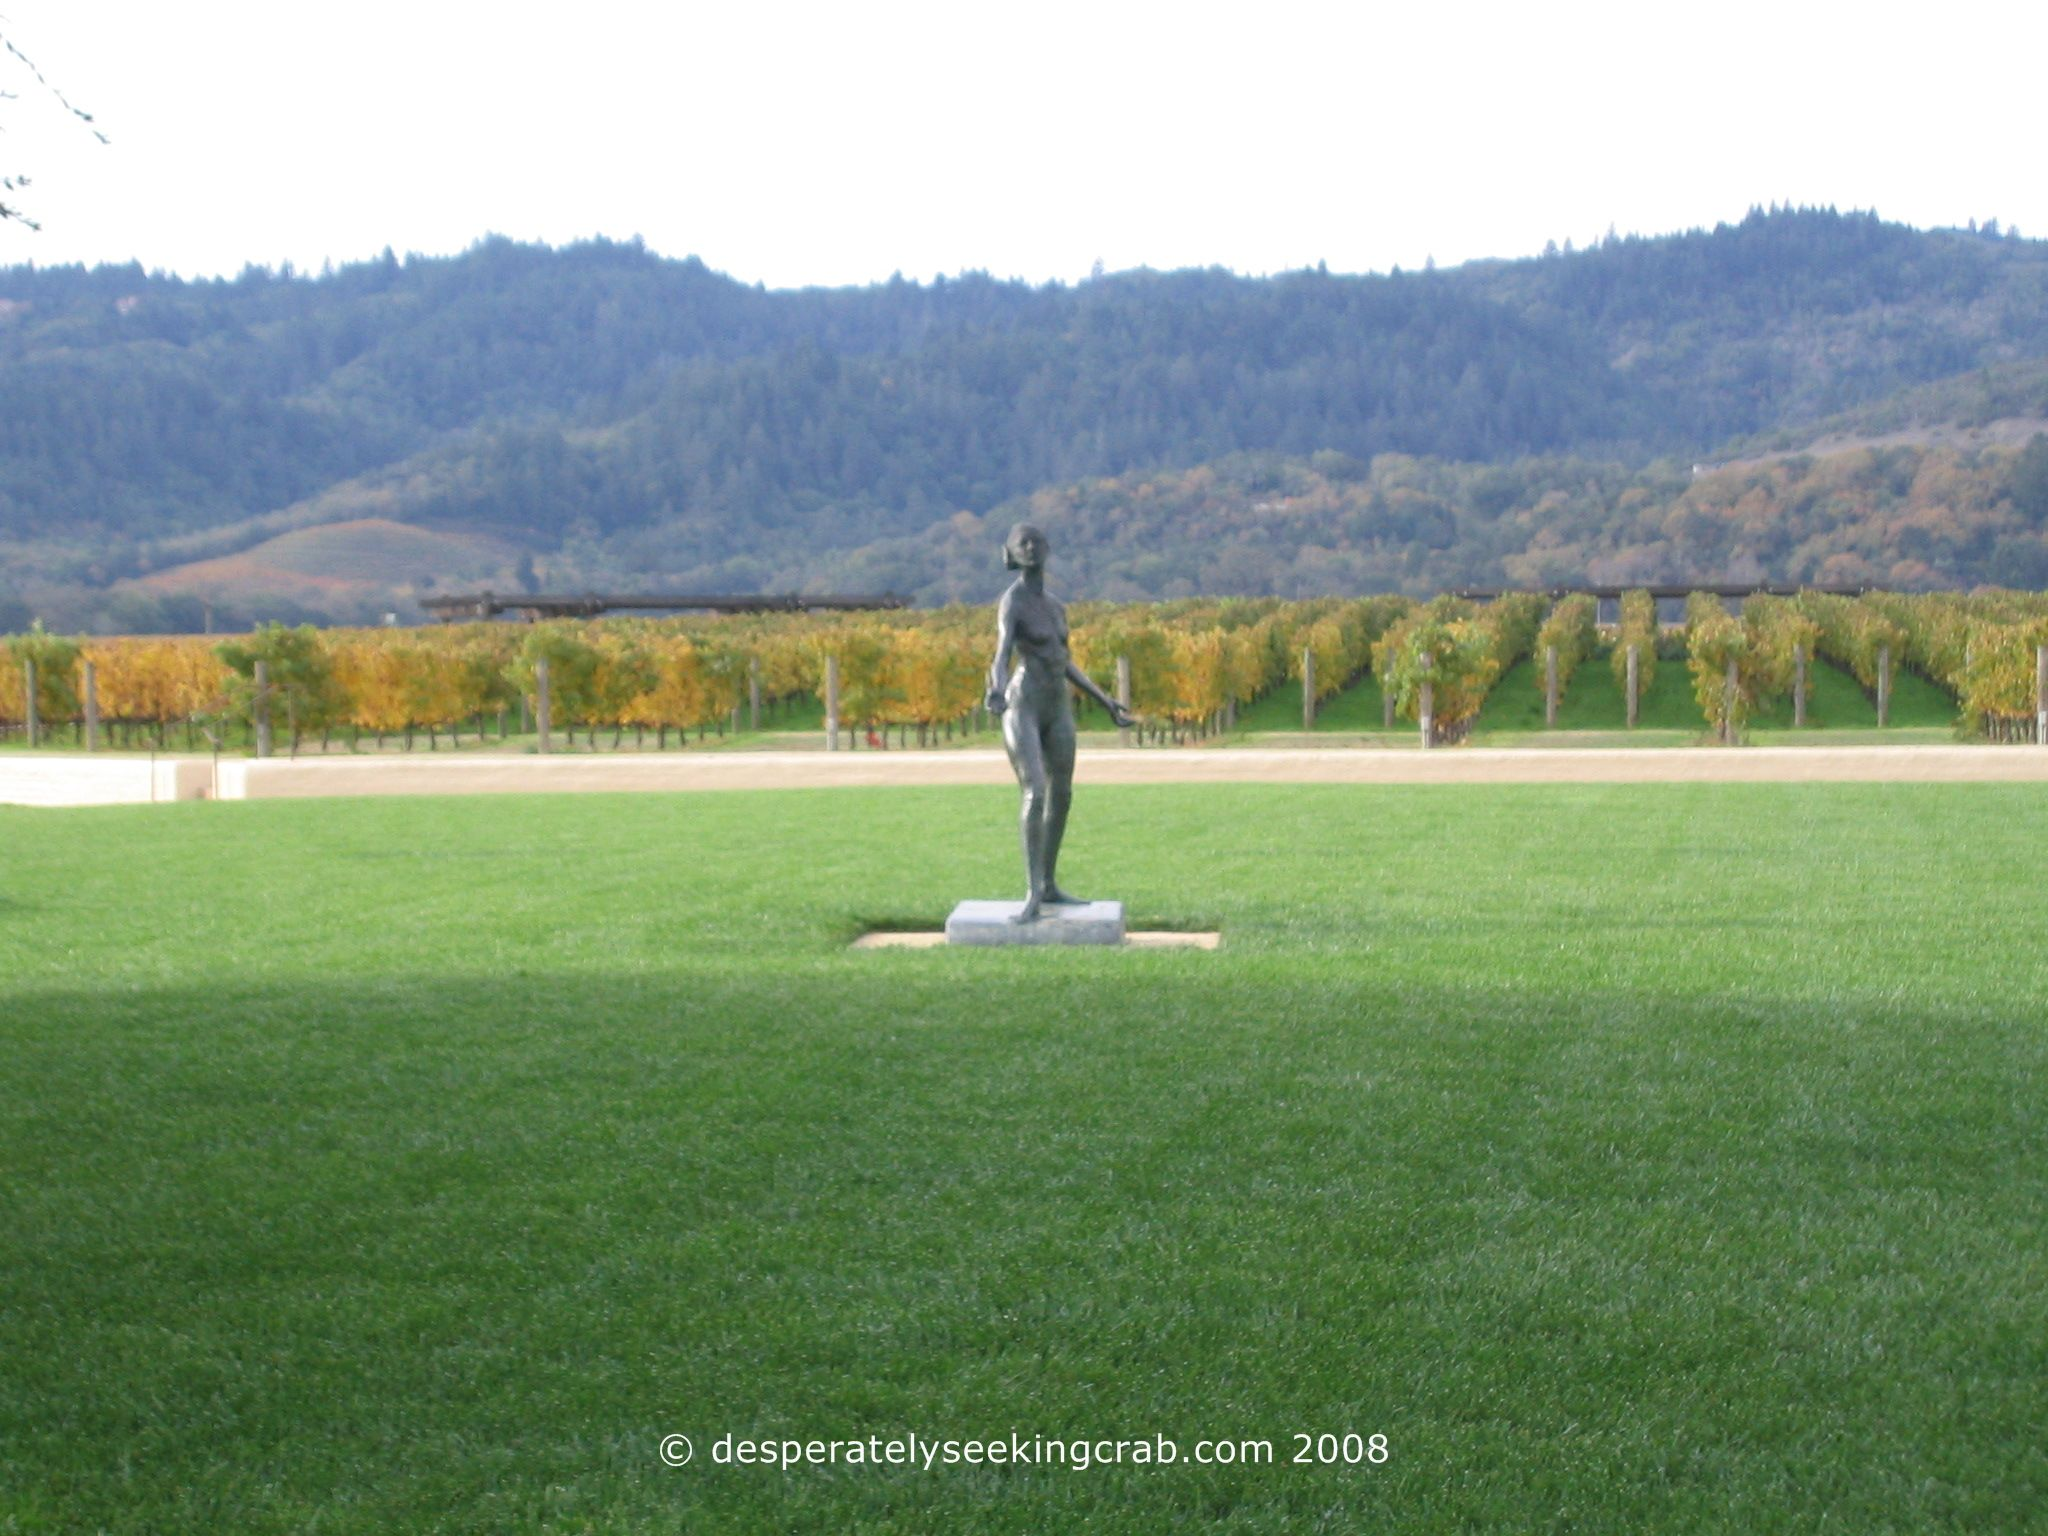 robert mondavi pestel Find the lowest price online for 2008 robert mondavi winery cabernet sauvignon reserve napa valley read expert ratings and buy online shop limited production wines.